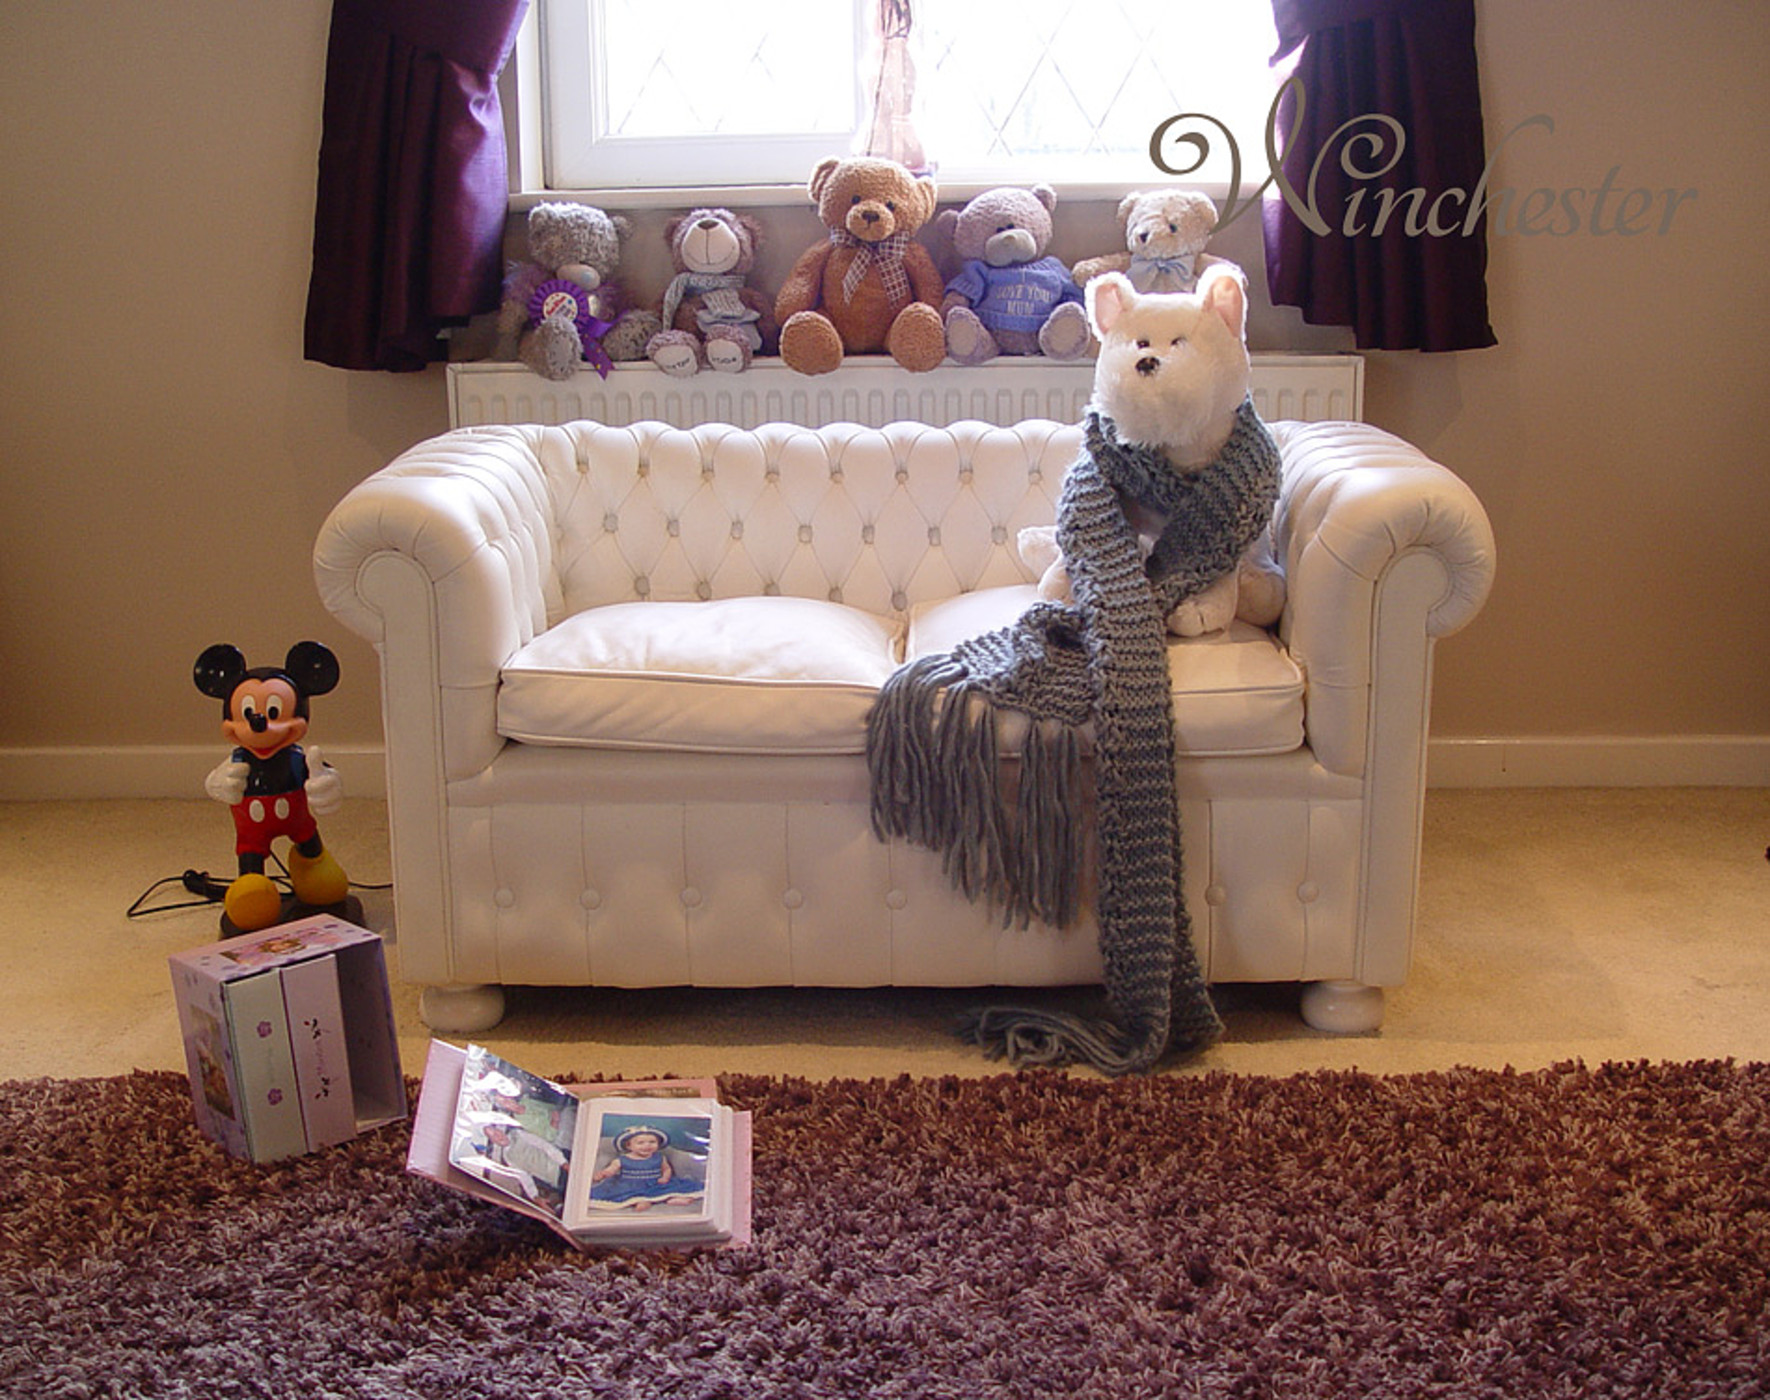 rocking chairs for toddlers canada chair cover rentals guelph sofas children 59 kids sofa princess armrest lounge couch - thesofa